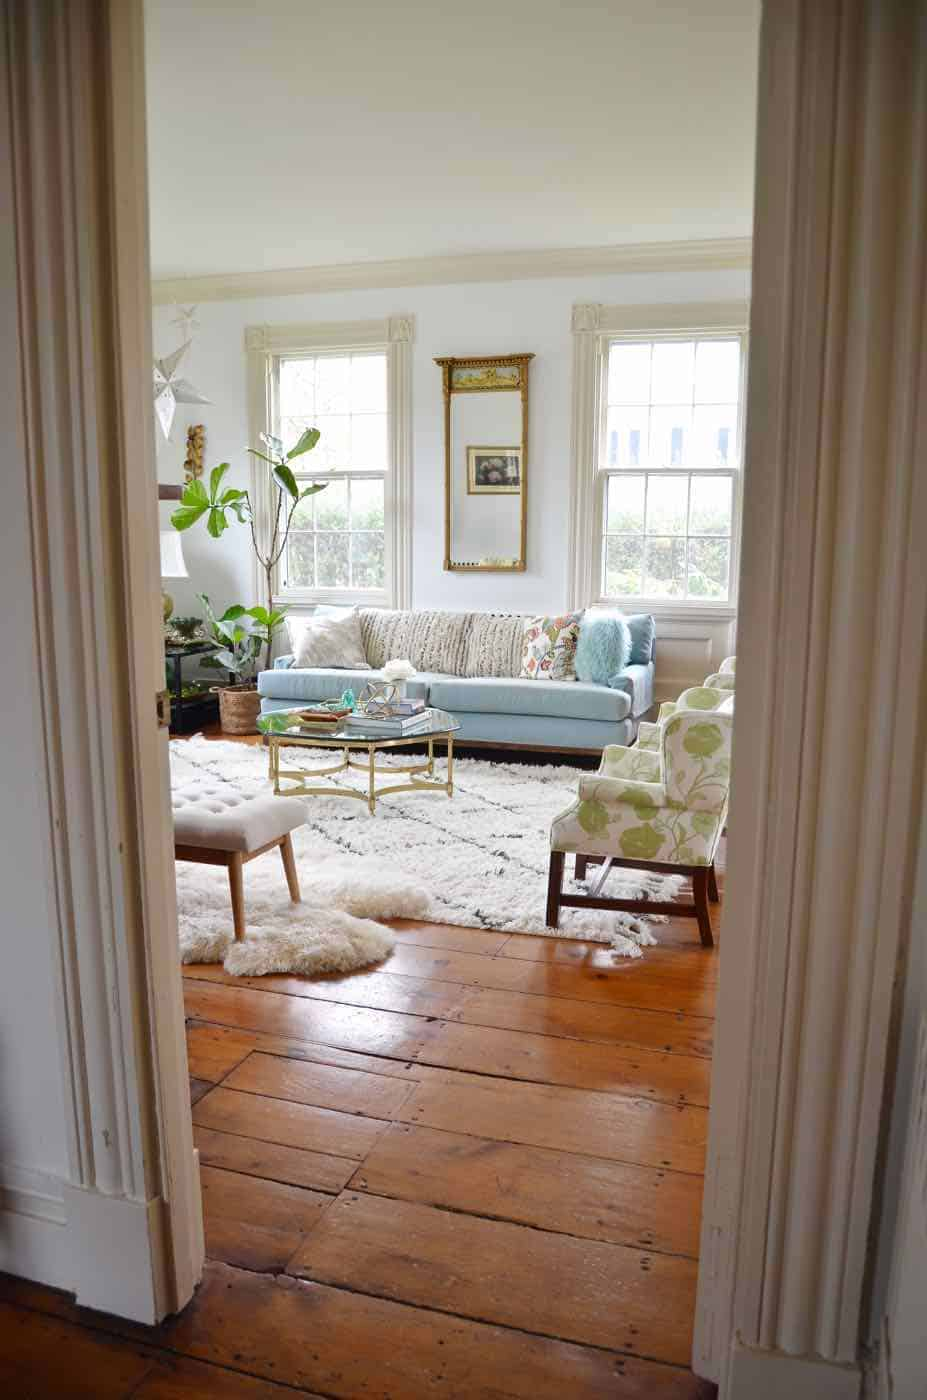 Living room refresh to open up the space and brighten the room.